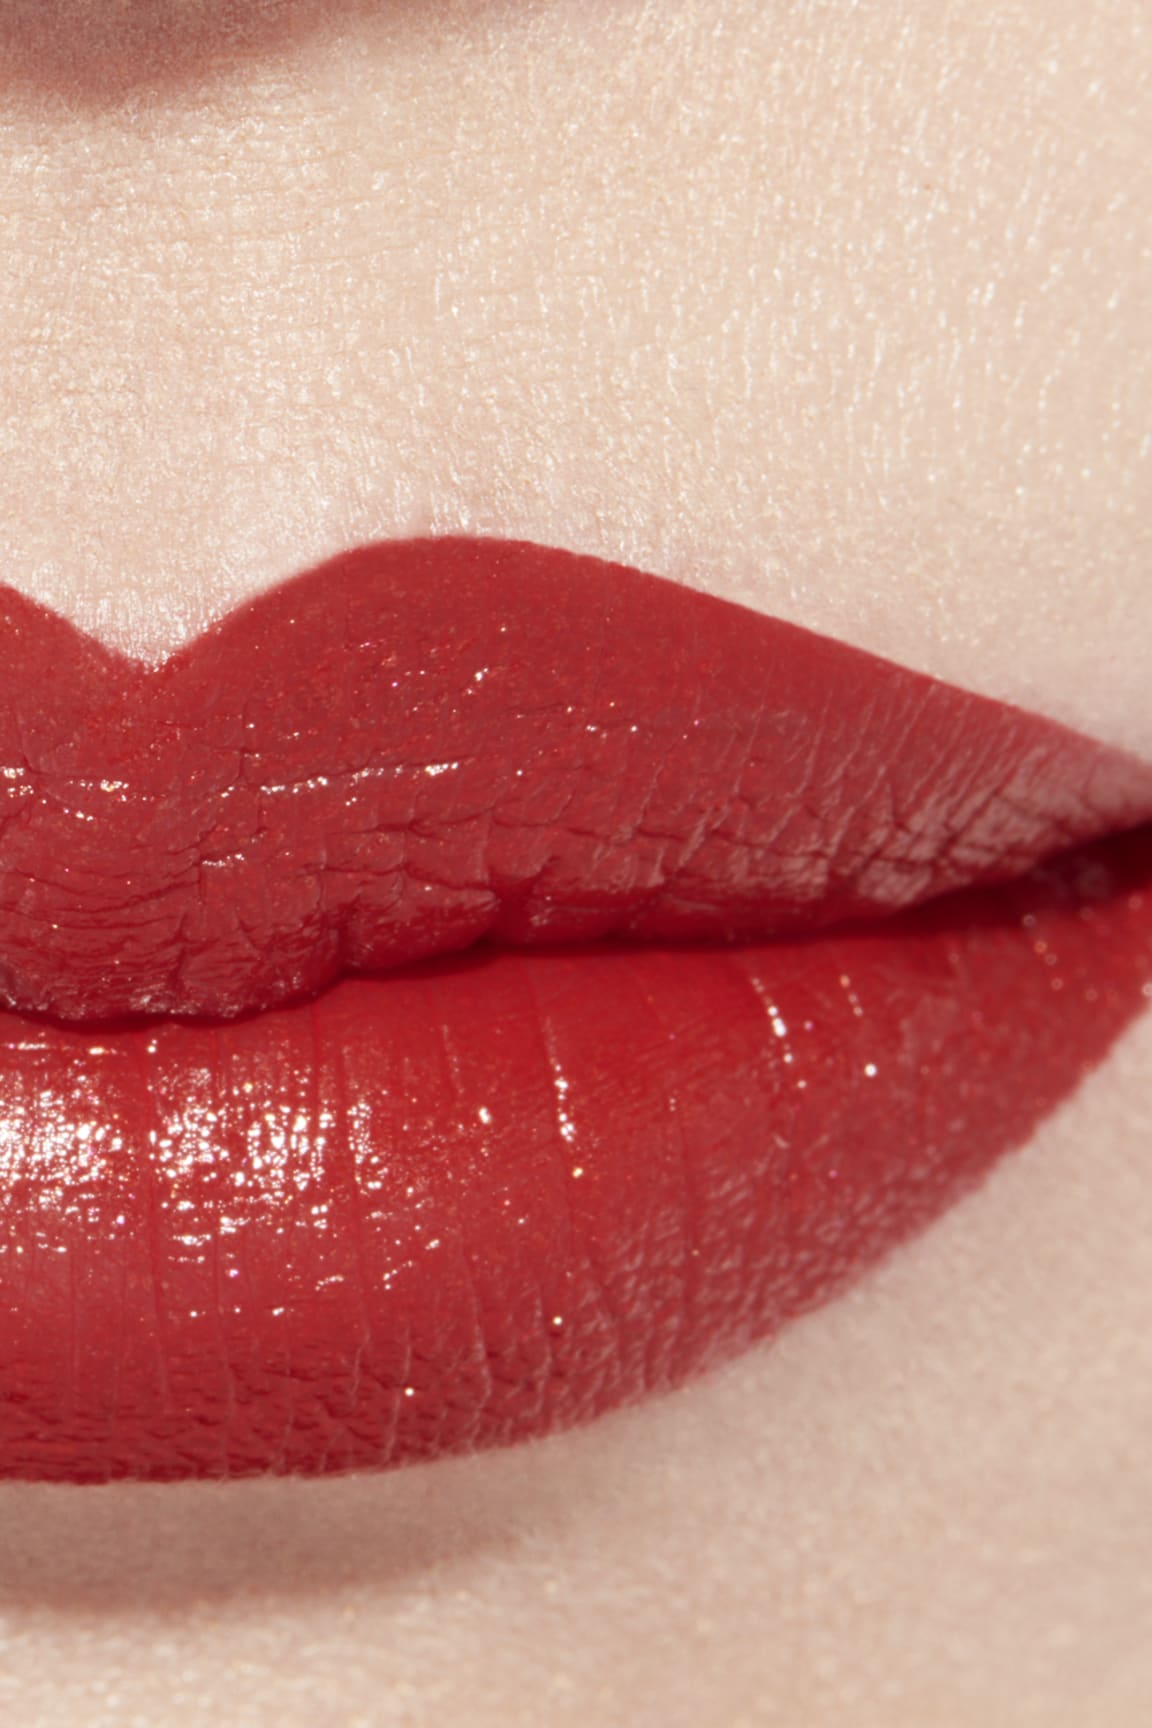 Application makeup visual 1 - ROUGE ALLURE 127 - ROUGE D'OR